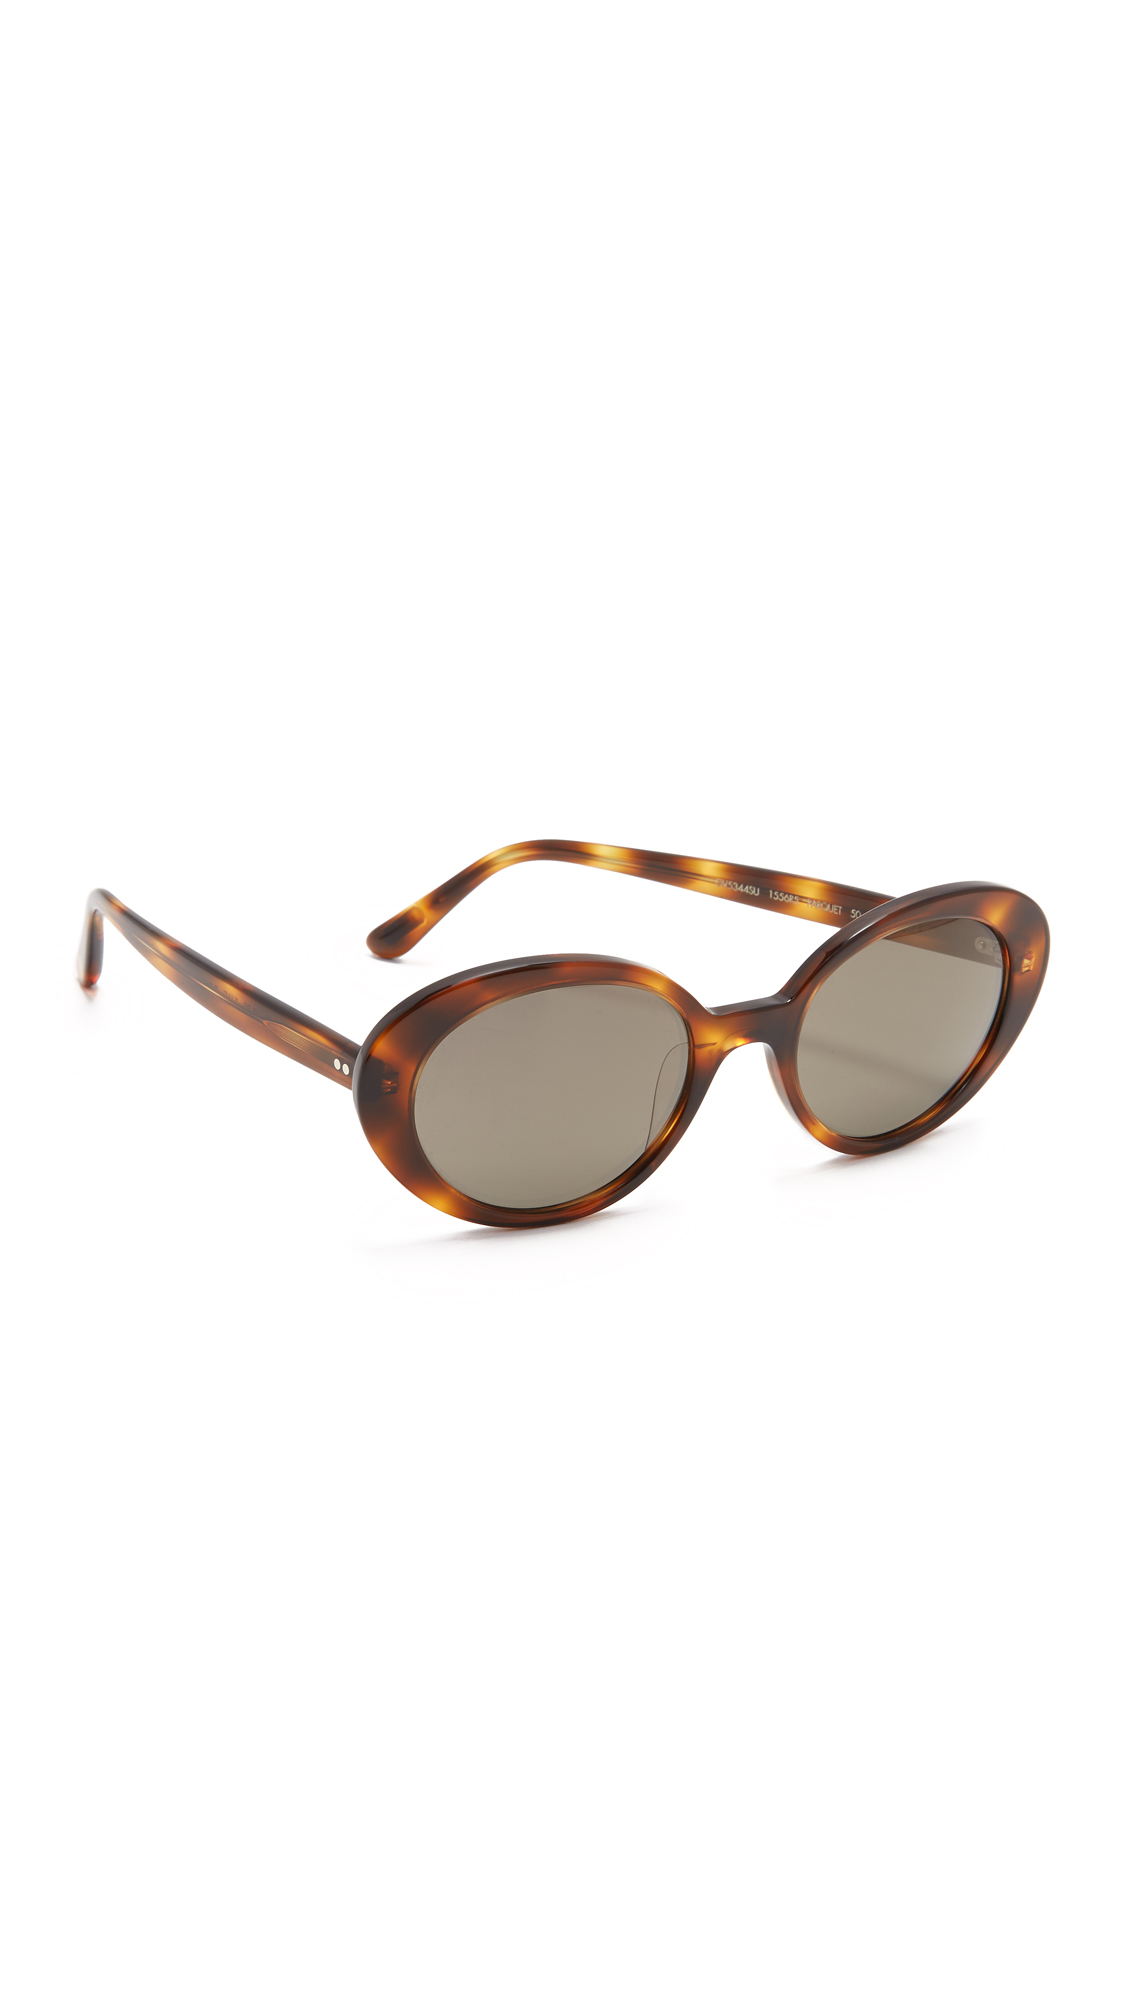 ce5c1a64384f Oliver Peoples The Row Parquet Sunglasses